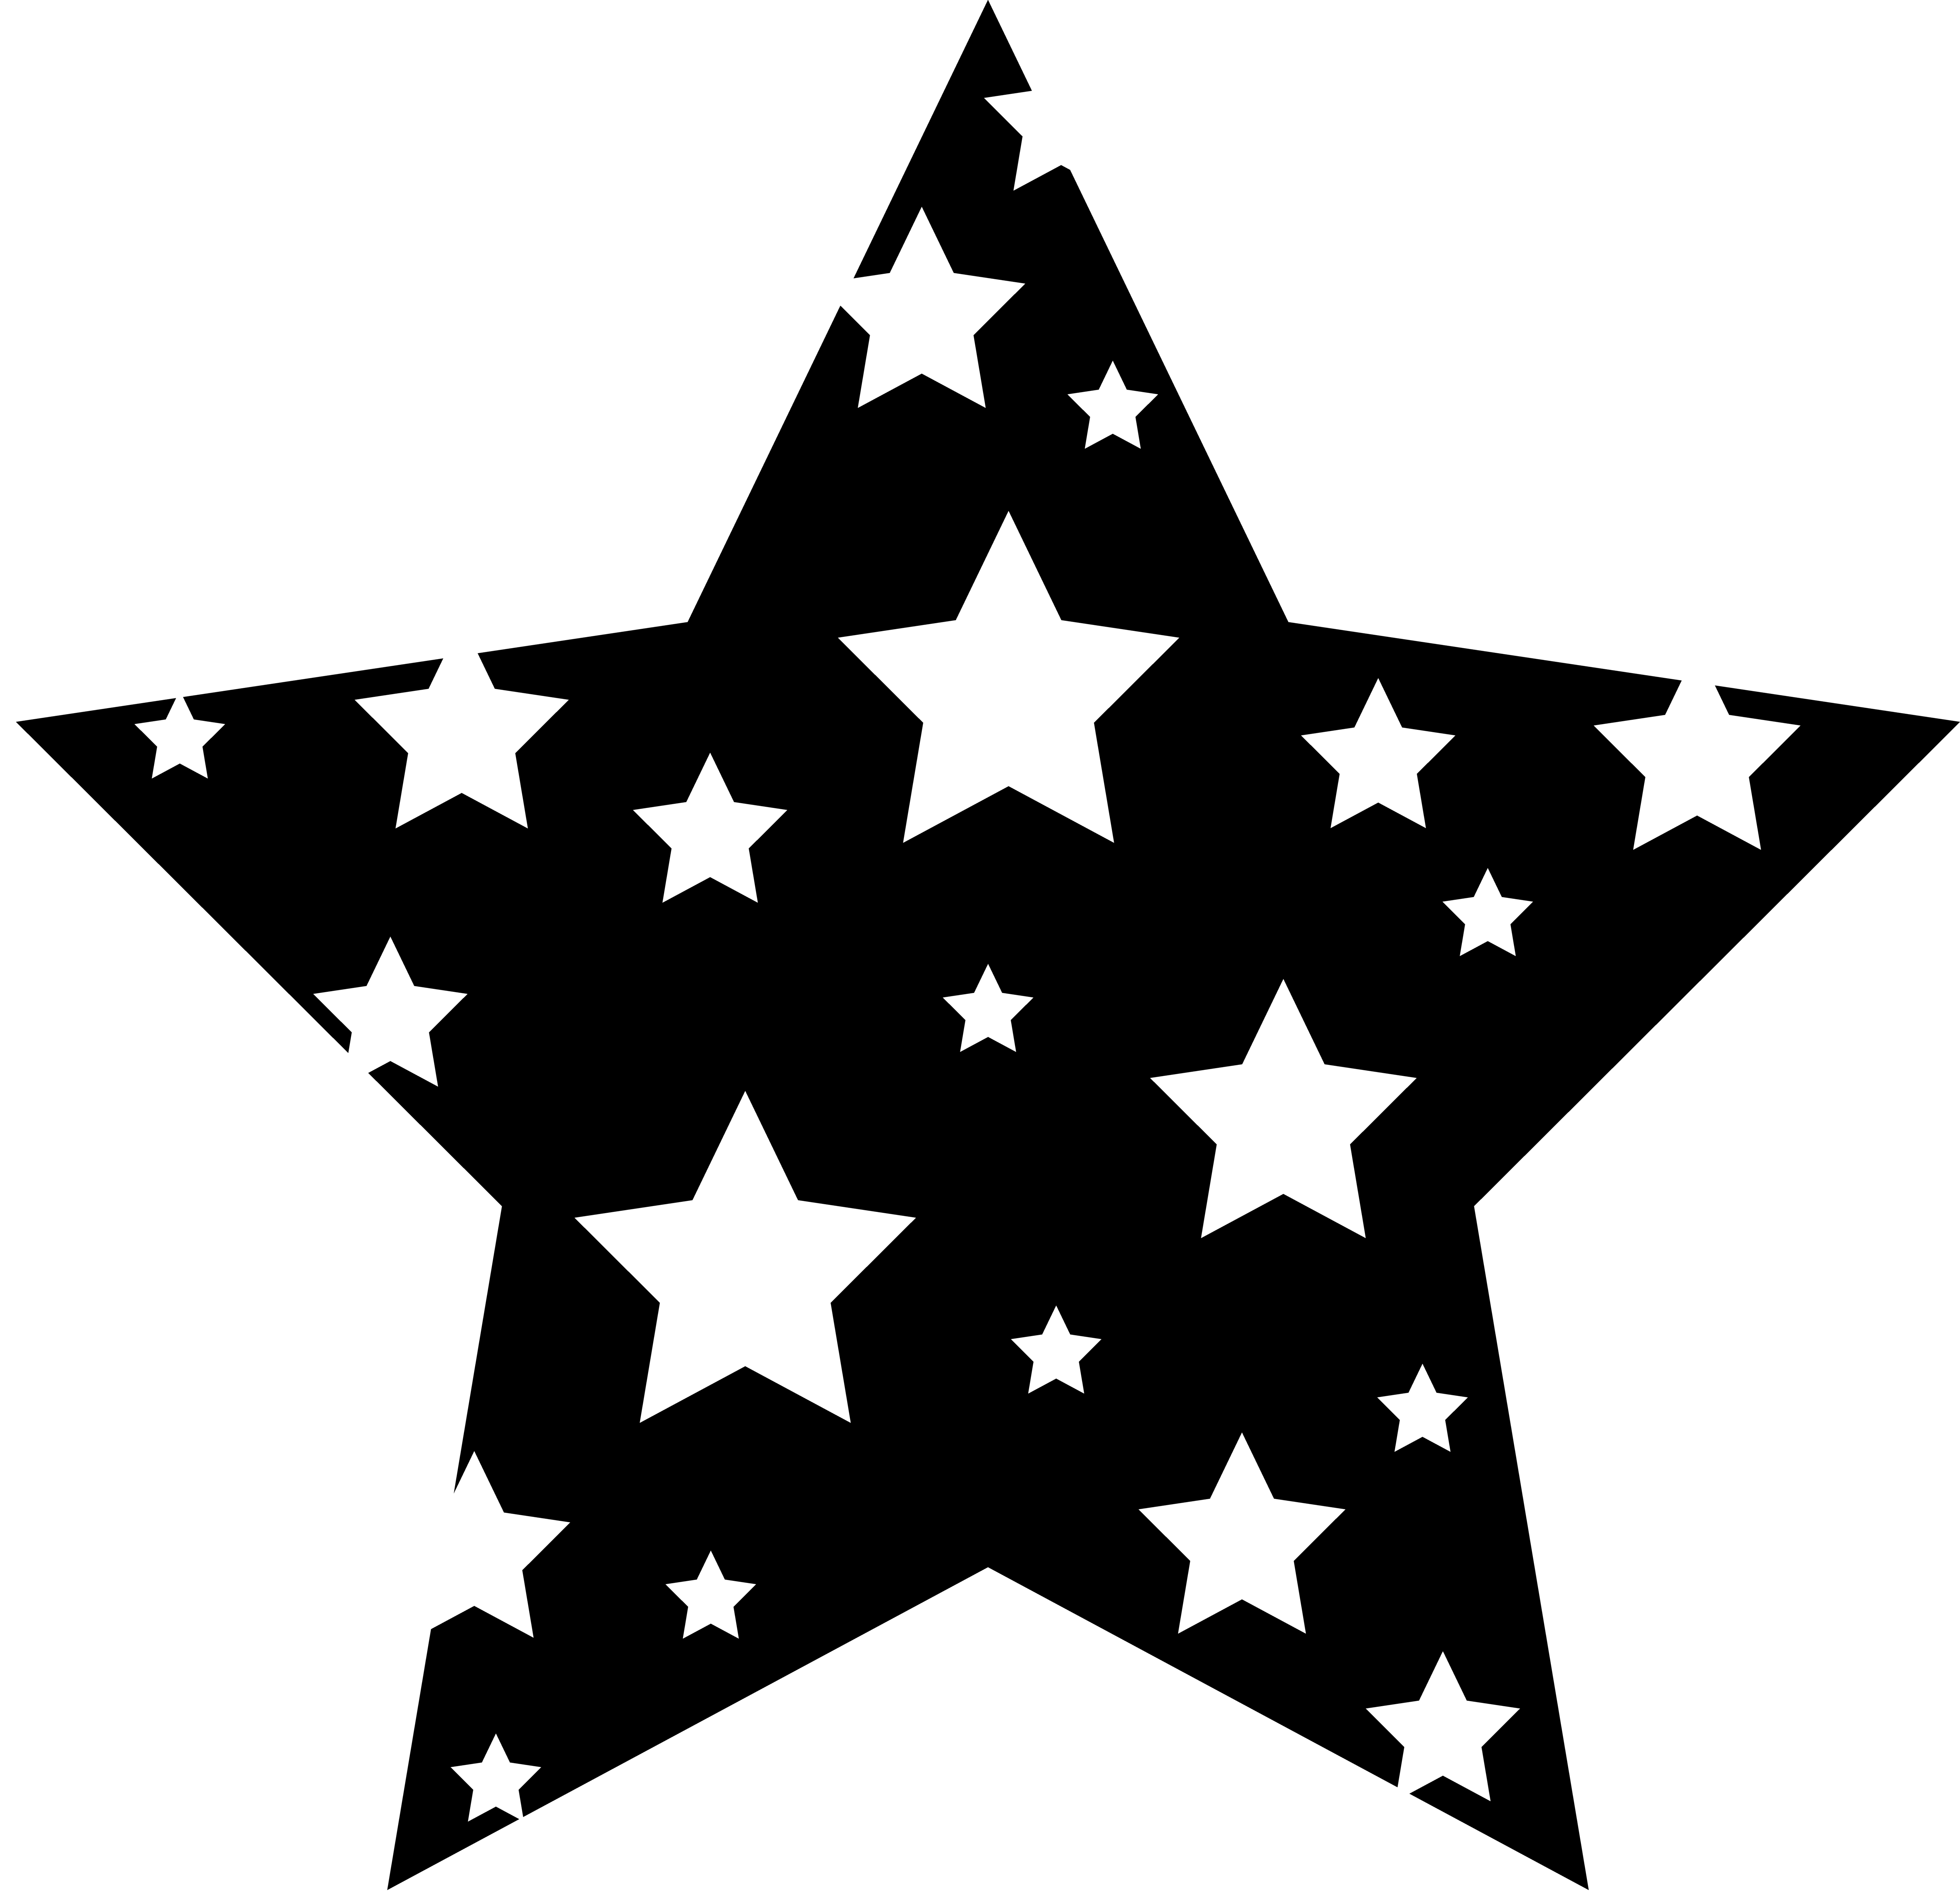 Falling Stars clipart star outline Download white Stars clipart collection